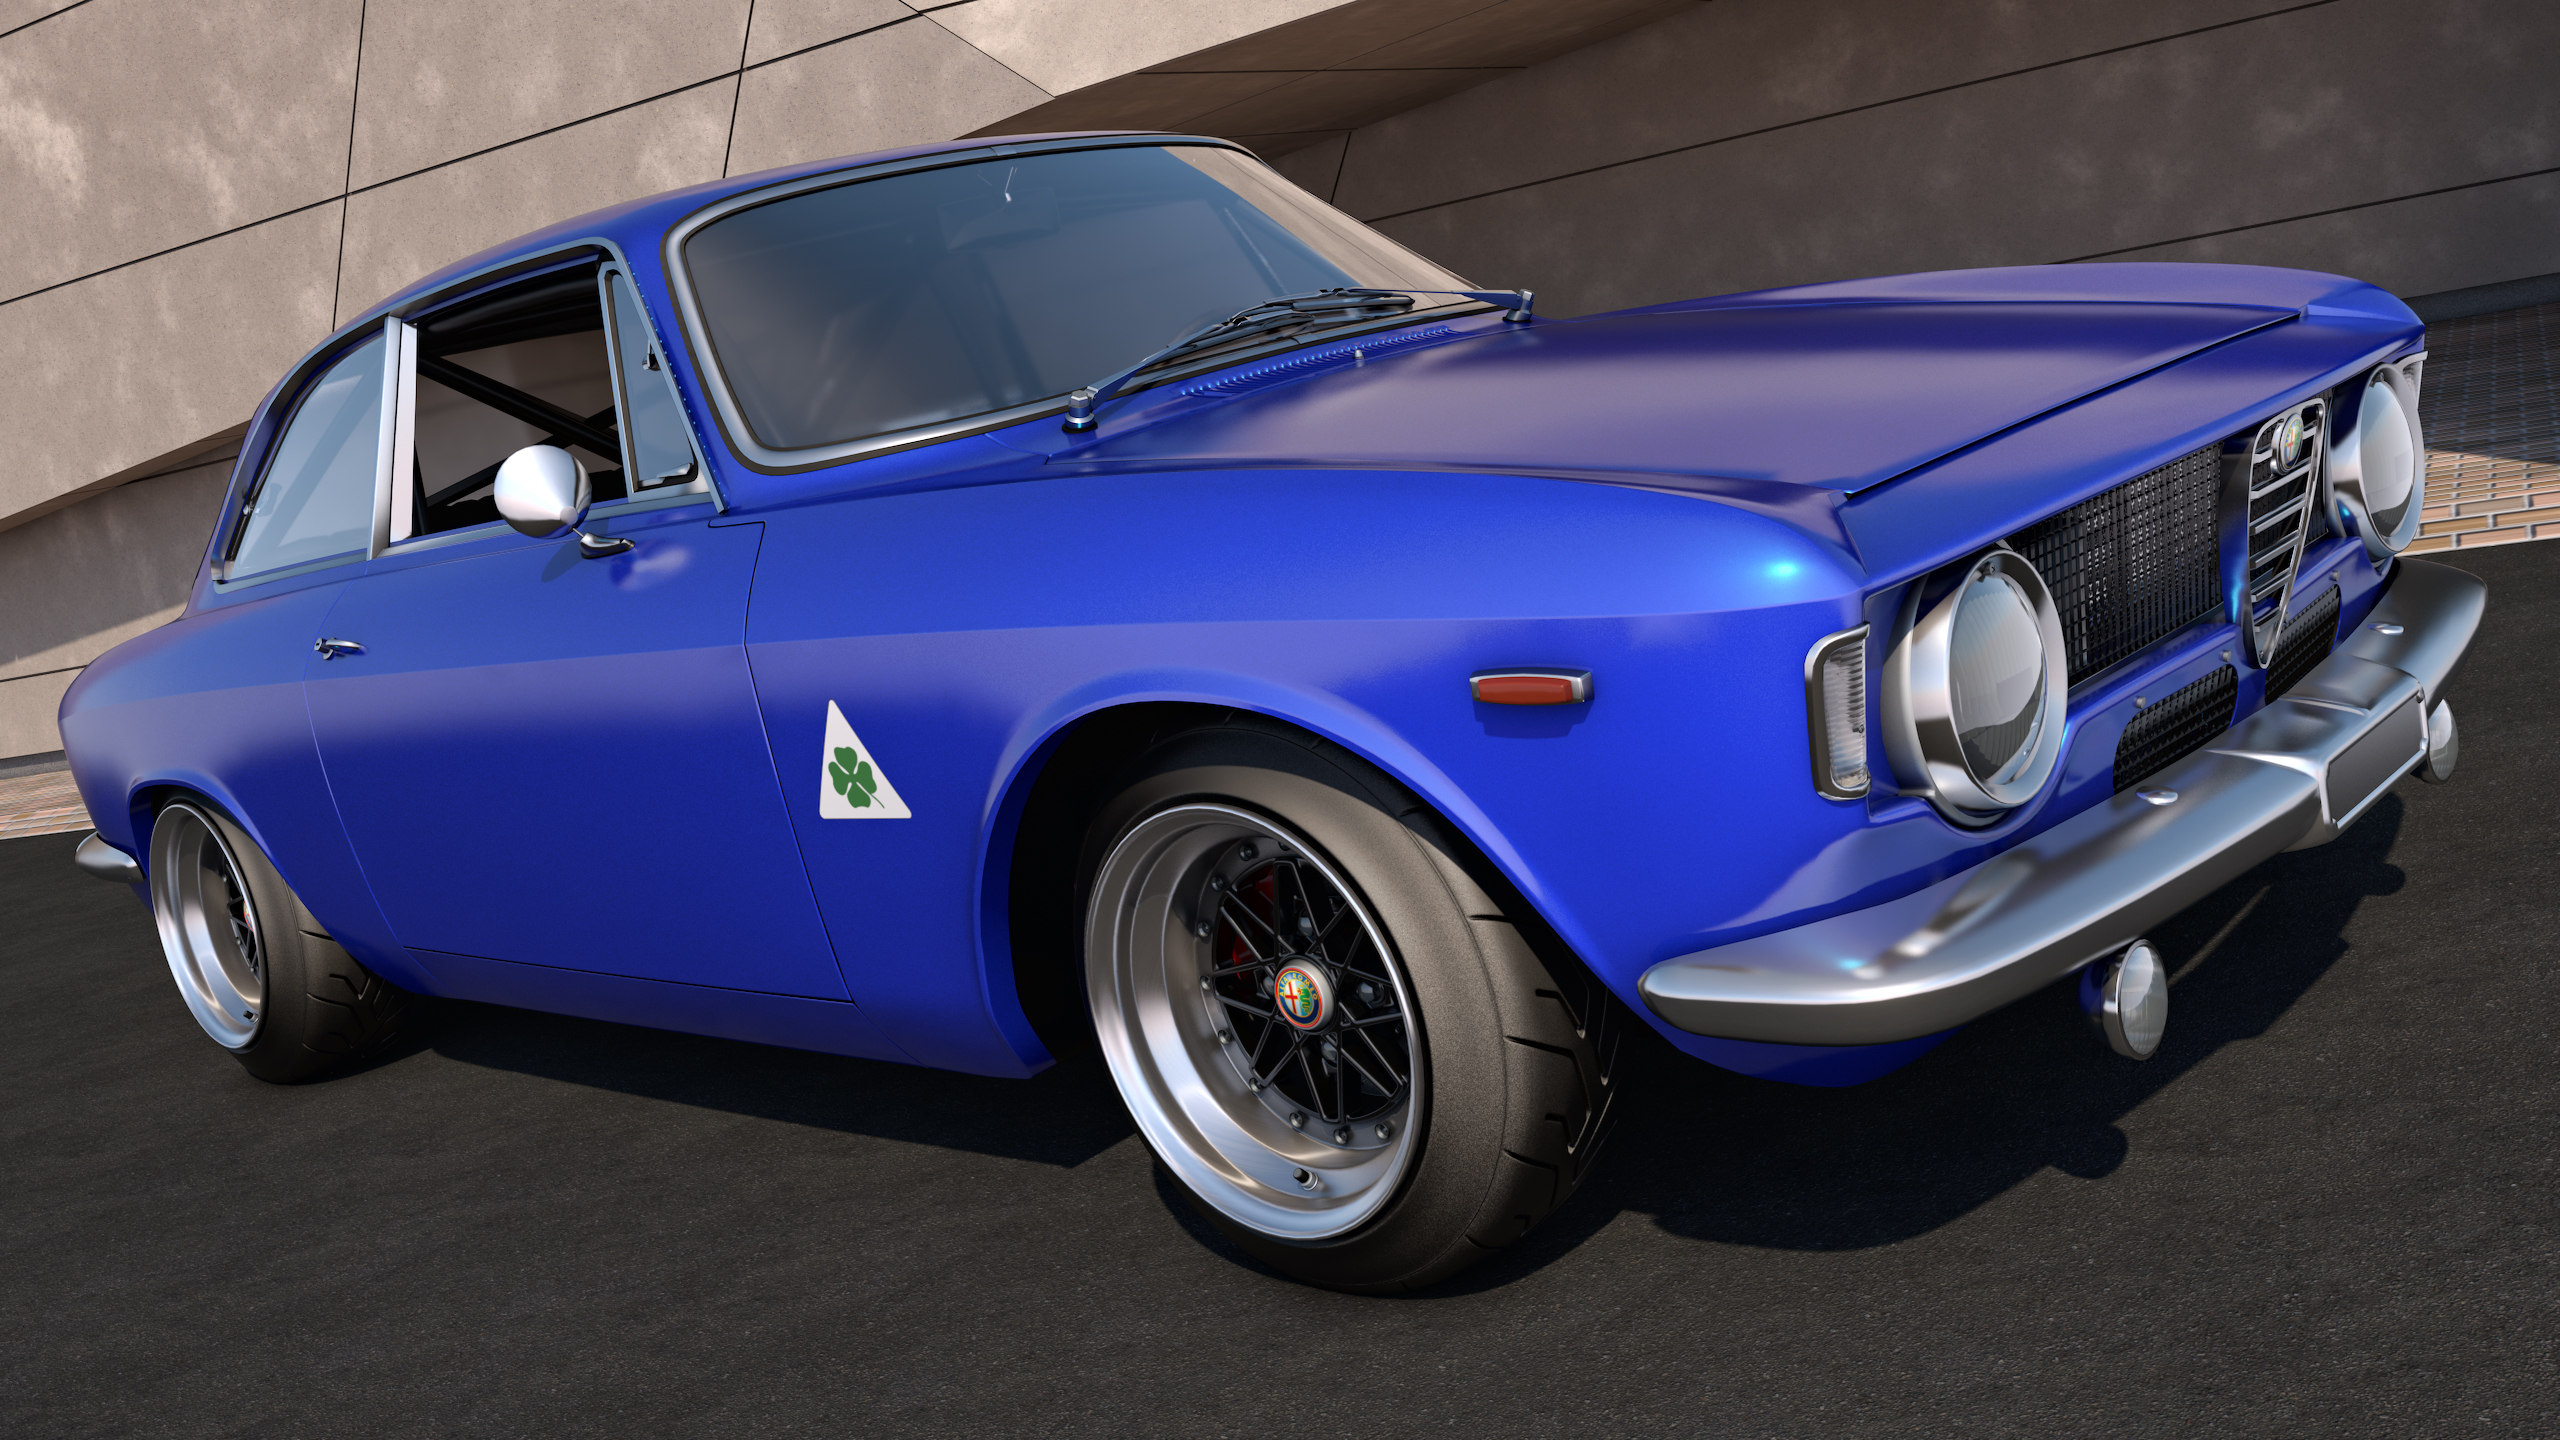 1965 Alfa Romeo Giulia Sprint GTA by SamCurry on DeviantArt